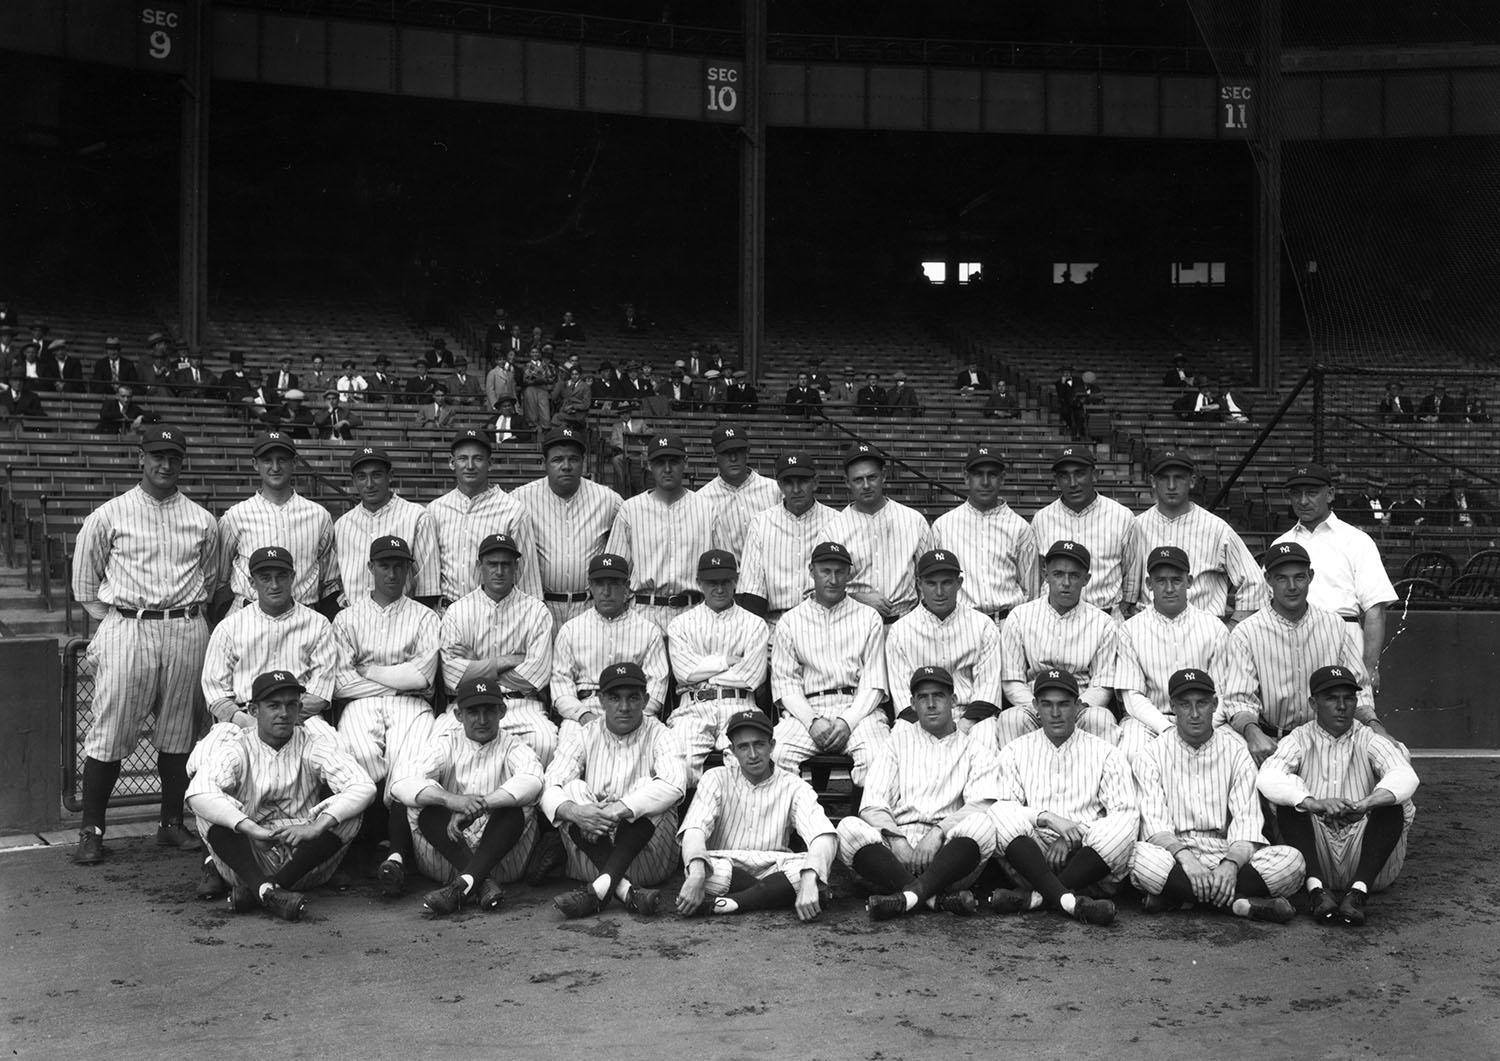 The 1927 Yankees, with its Murderers' Row lineup, featured multiple Hall of Famers and won the 1927 World Series with a sweep of the Pittsburgh Pirates. (National Baseball Hall of Fame)